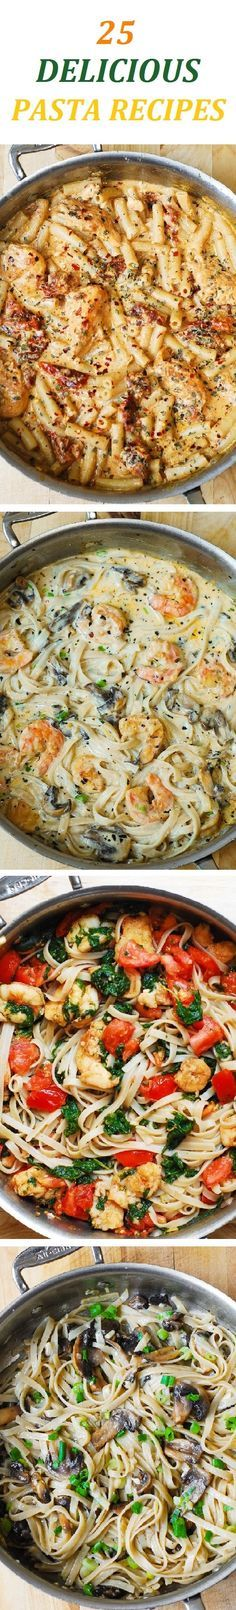 25 delicious pasta recipes with all kinds of pasta: fettuccine, spaghetti, penne, lasagna, homemade ravioli, and tortellini. You will find lots of options to choose from to help you in planning your weeknight or weekend dinners!